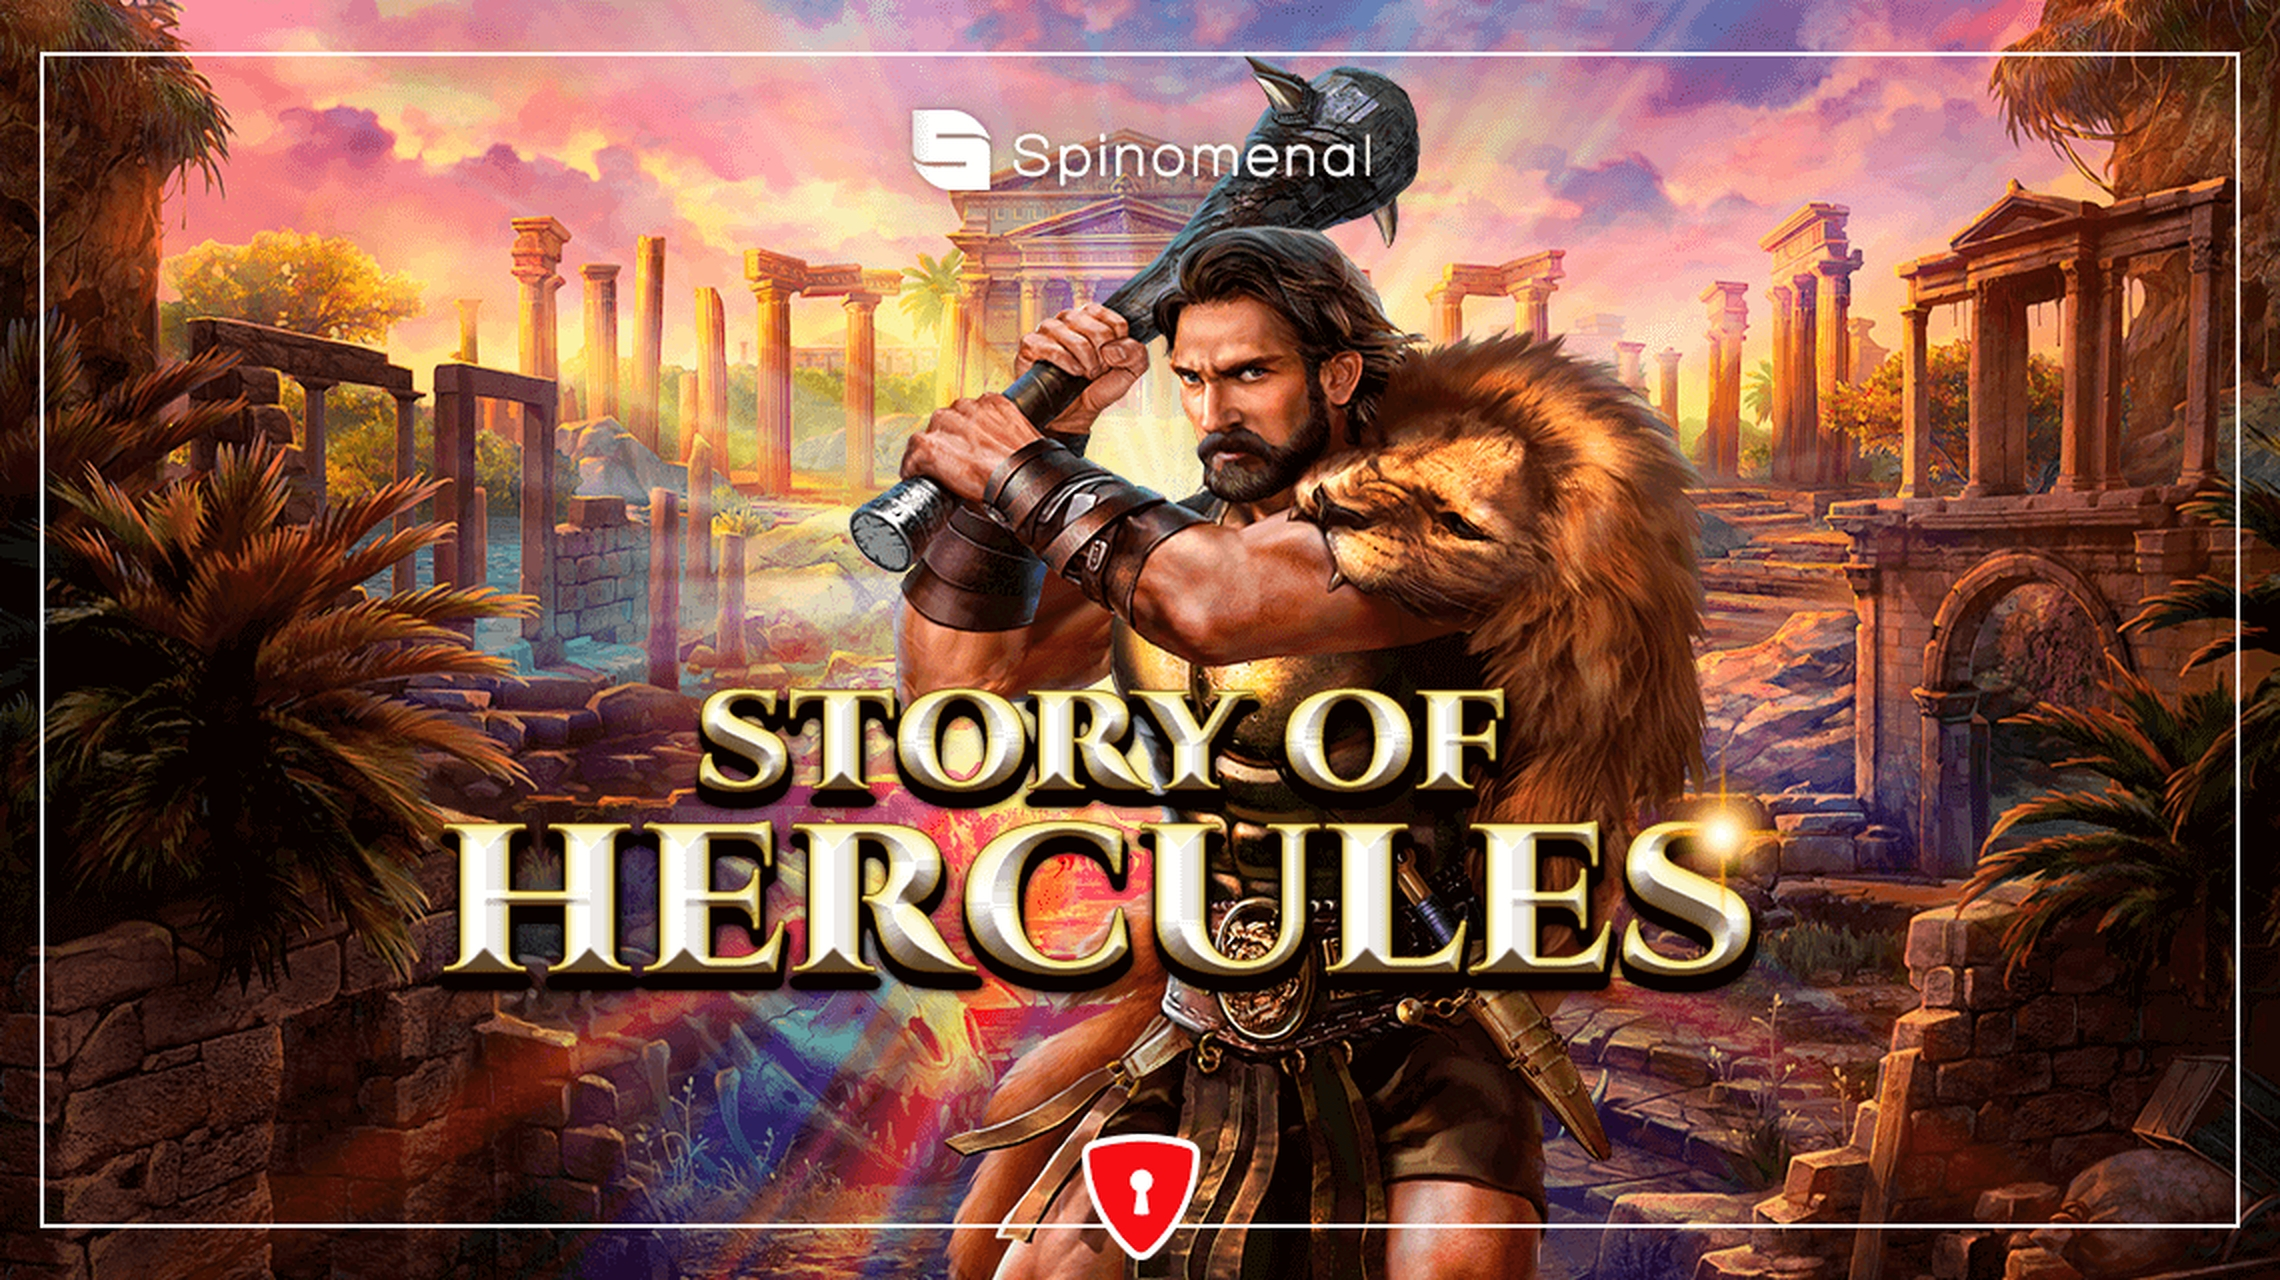 The Story of Hercules Expanded Edition Online Slot Demo Game by Spinomenal